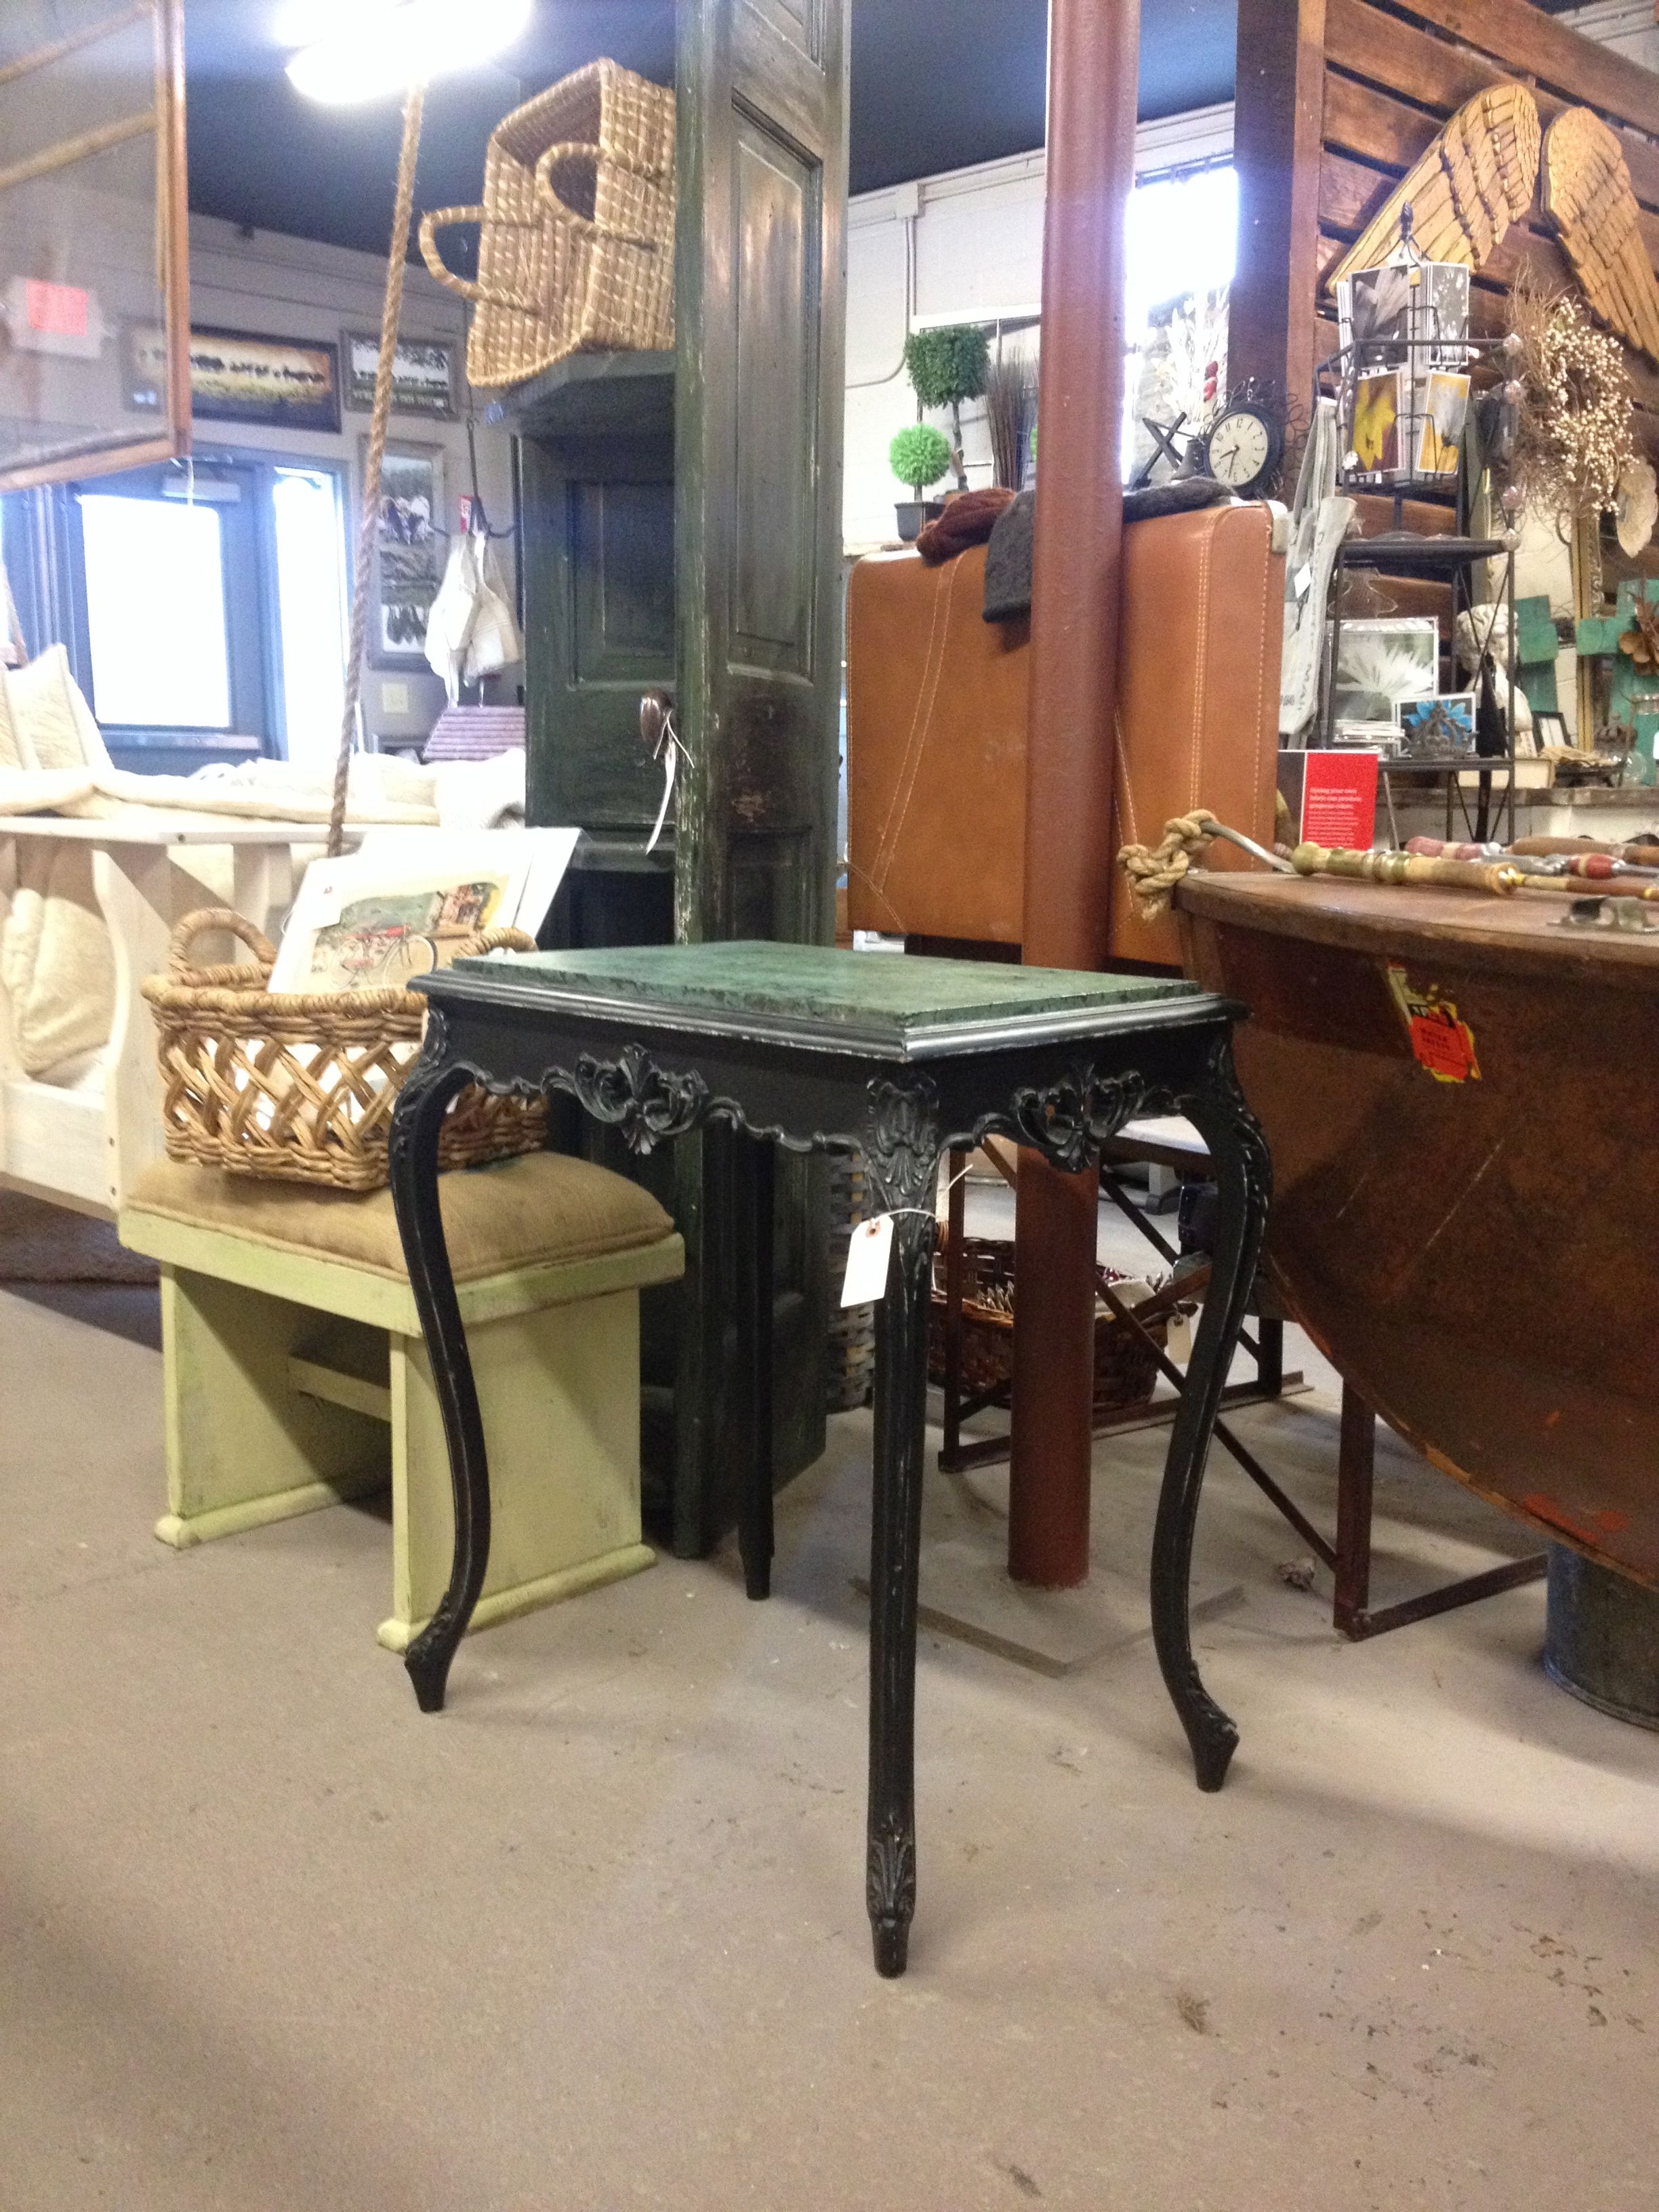 End Table with Handmade Decorative Concrete $125